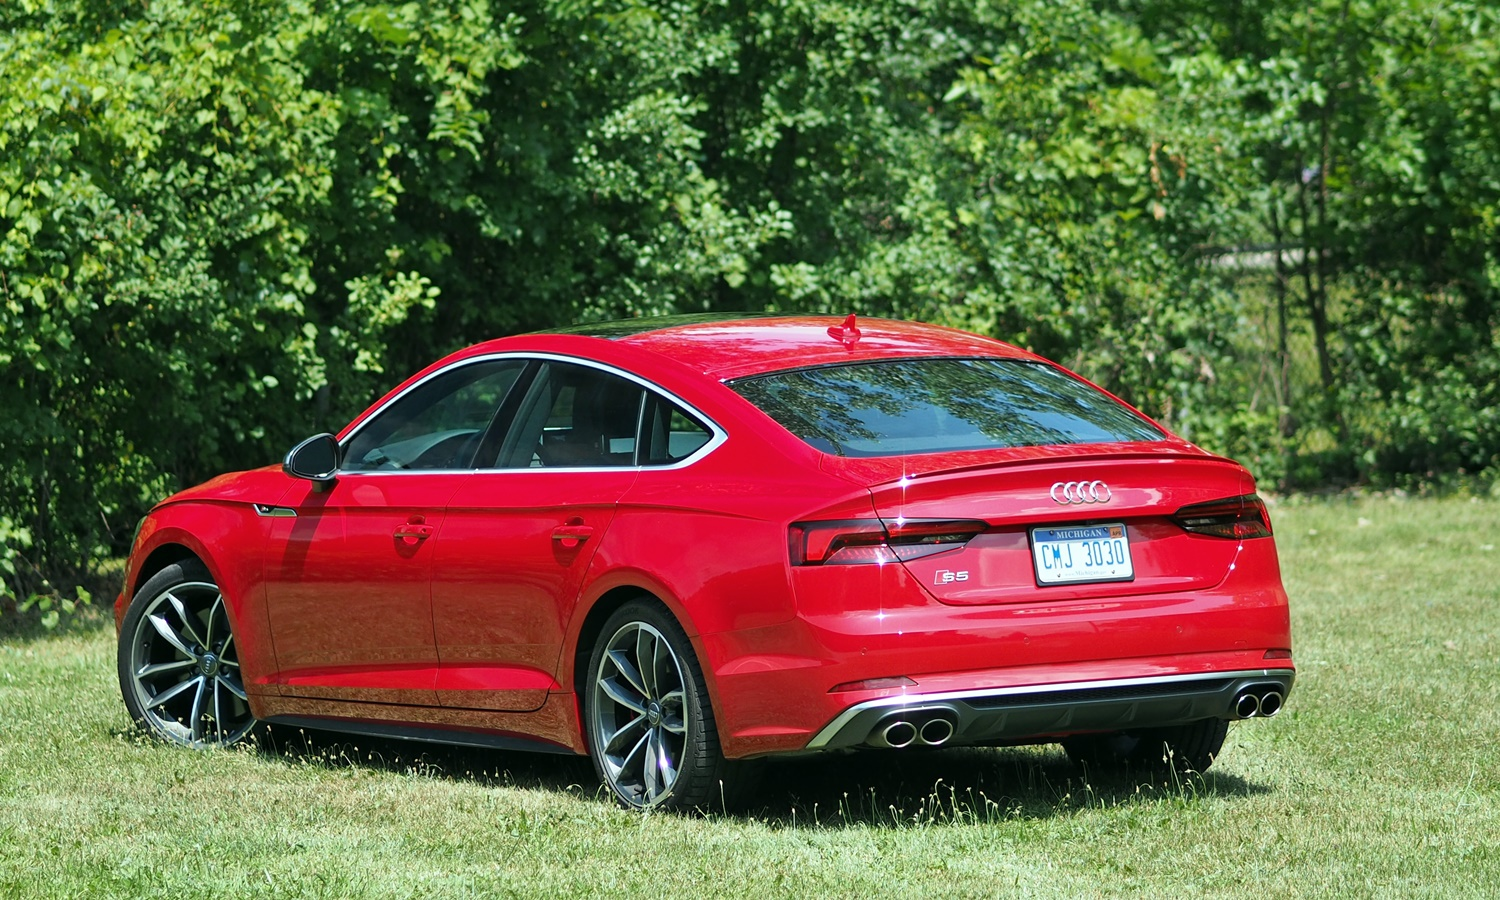 Kia Stinger Photos: Audi S5 Sportback rear angle